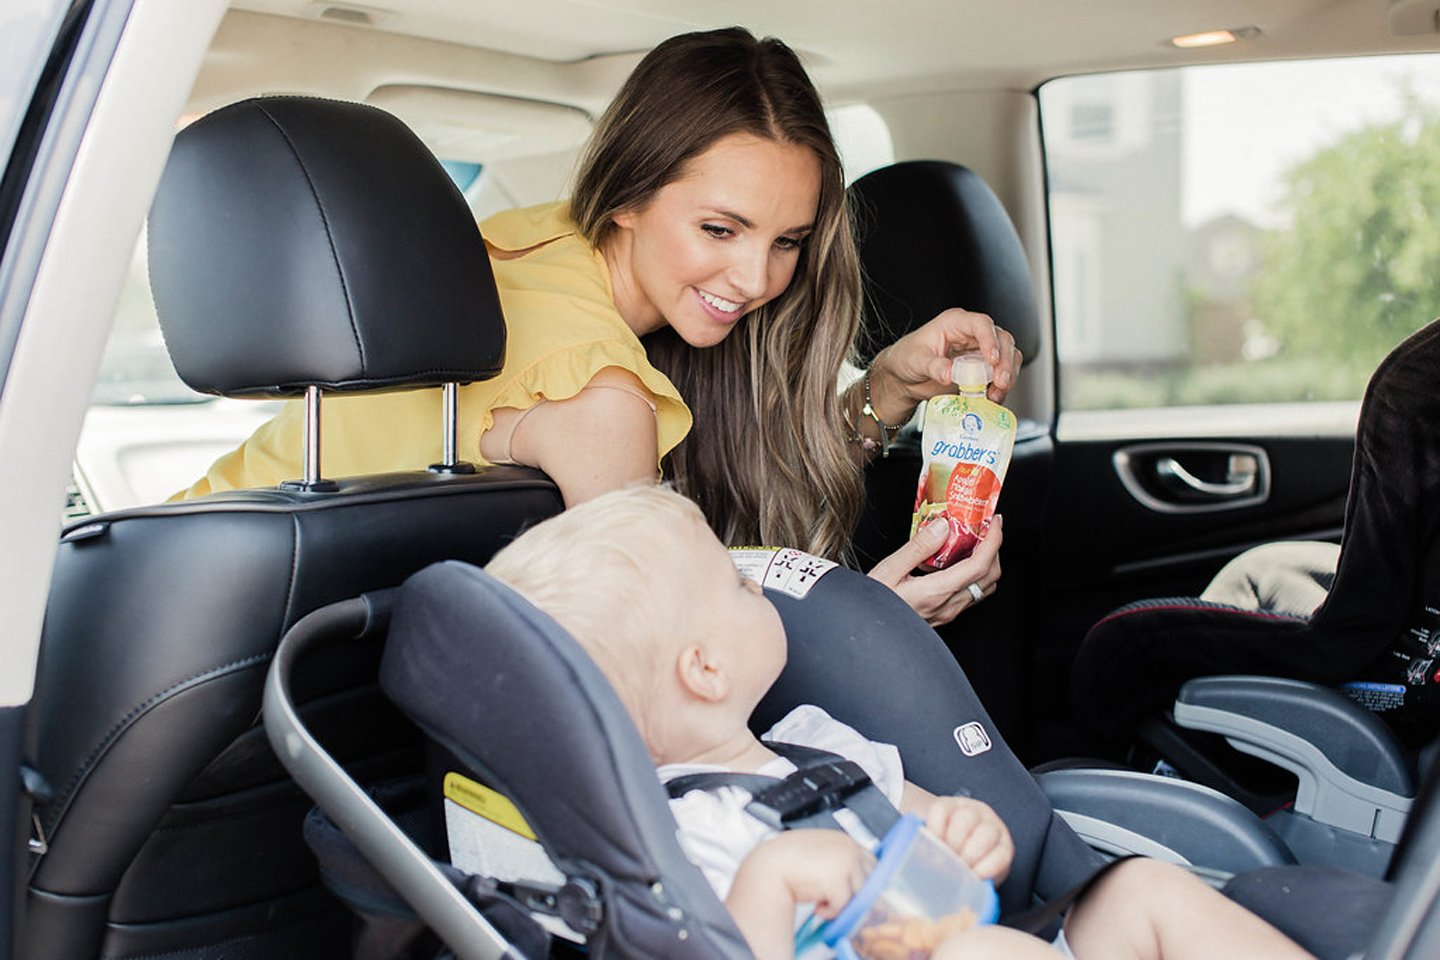 Merricksart.com | Gerber Grabbers with the Smart Flow spout are the best road trip snacks